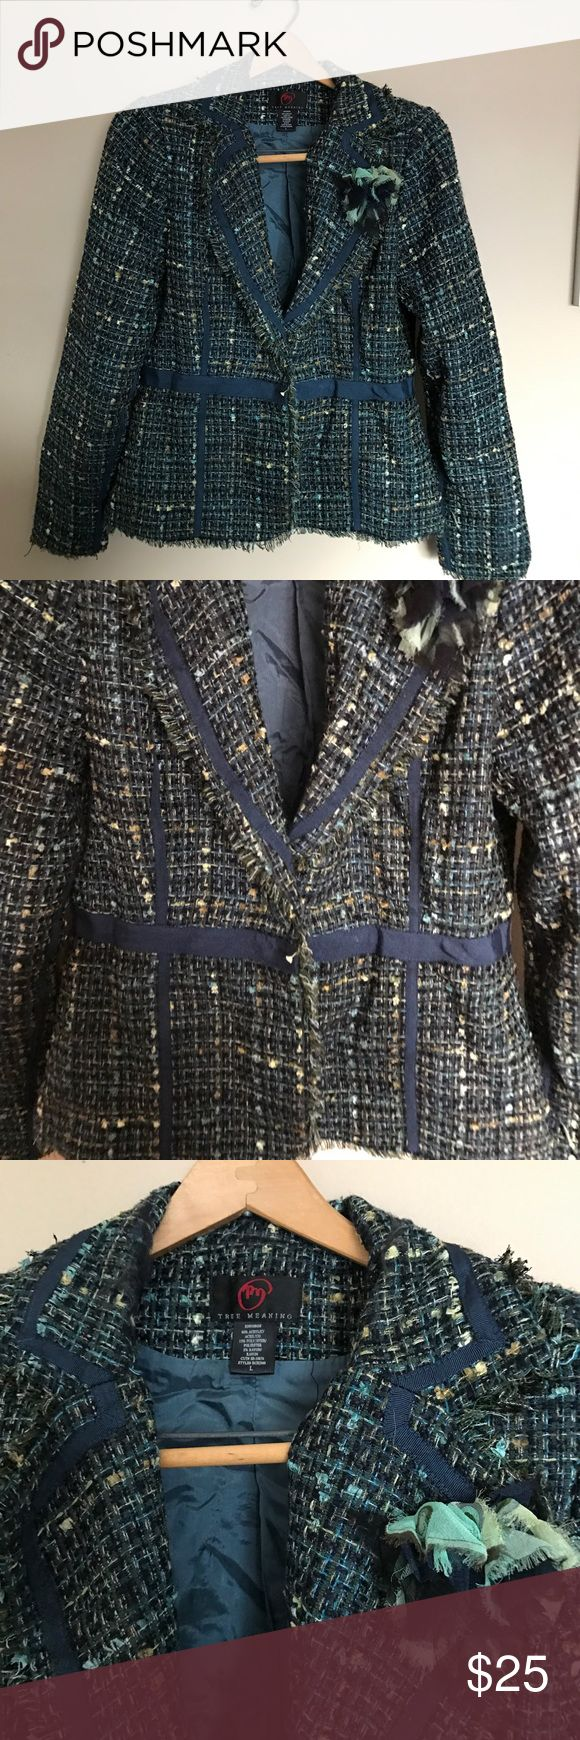 True Meaning tweed eccentric blazer True Meaning tweed eccentric blazer with flower detail. Material is actual blended acrylic , polyester and rayon combo with tweed look. Cute for office or weekend fun with jeans and flats. I love reasonable offers ☀️ True Meaning Jackets & Coats Blazers